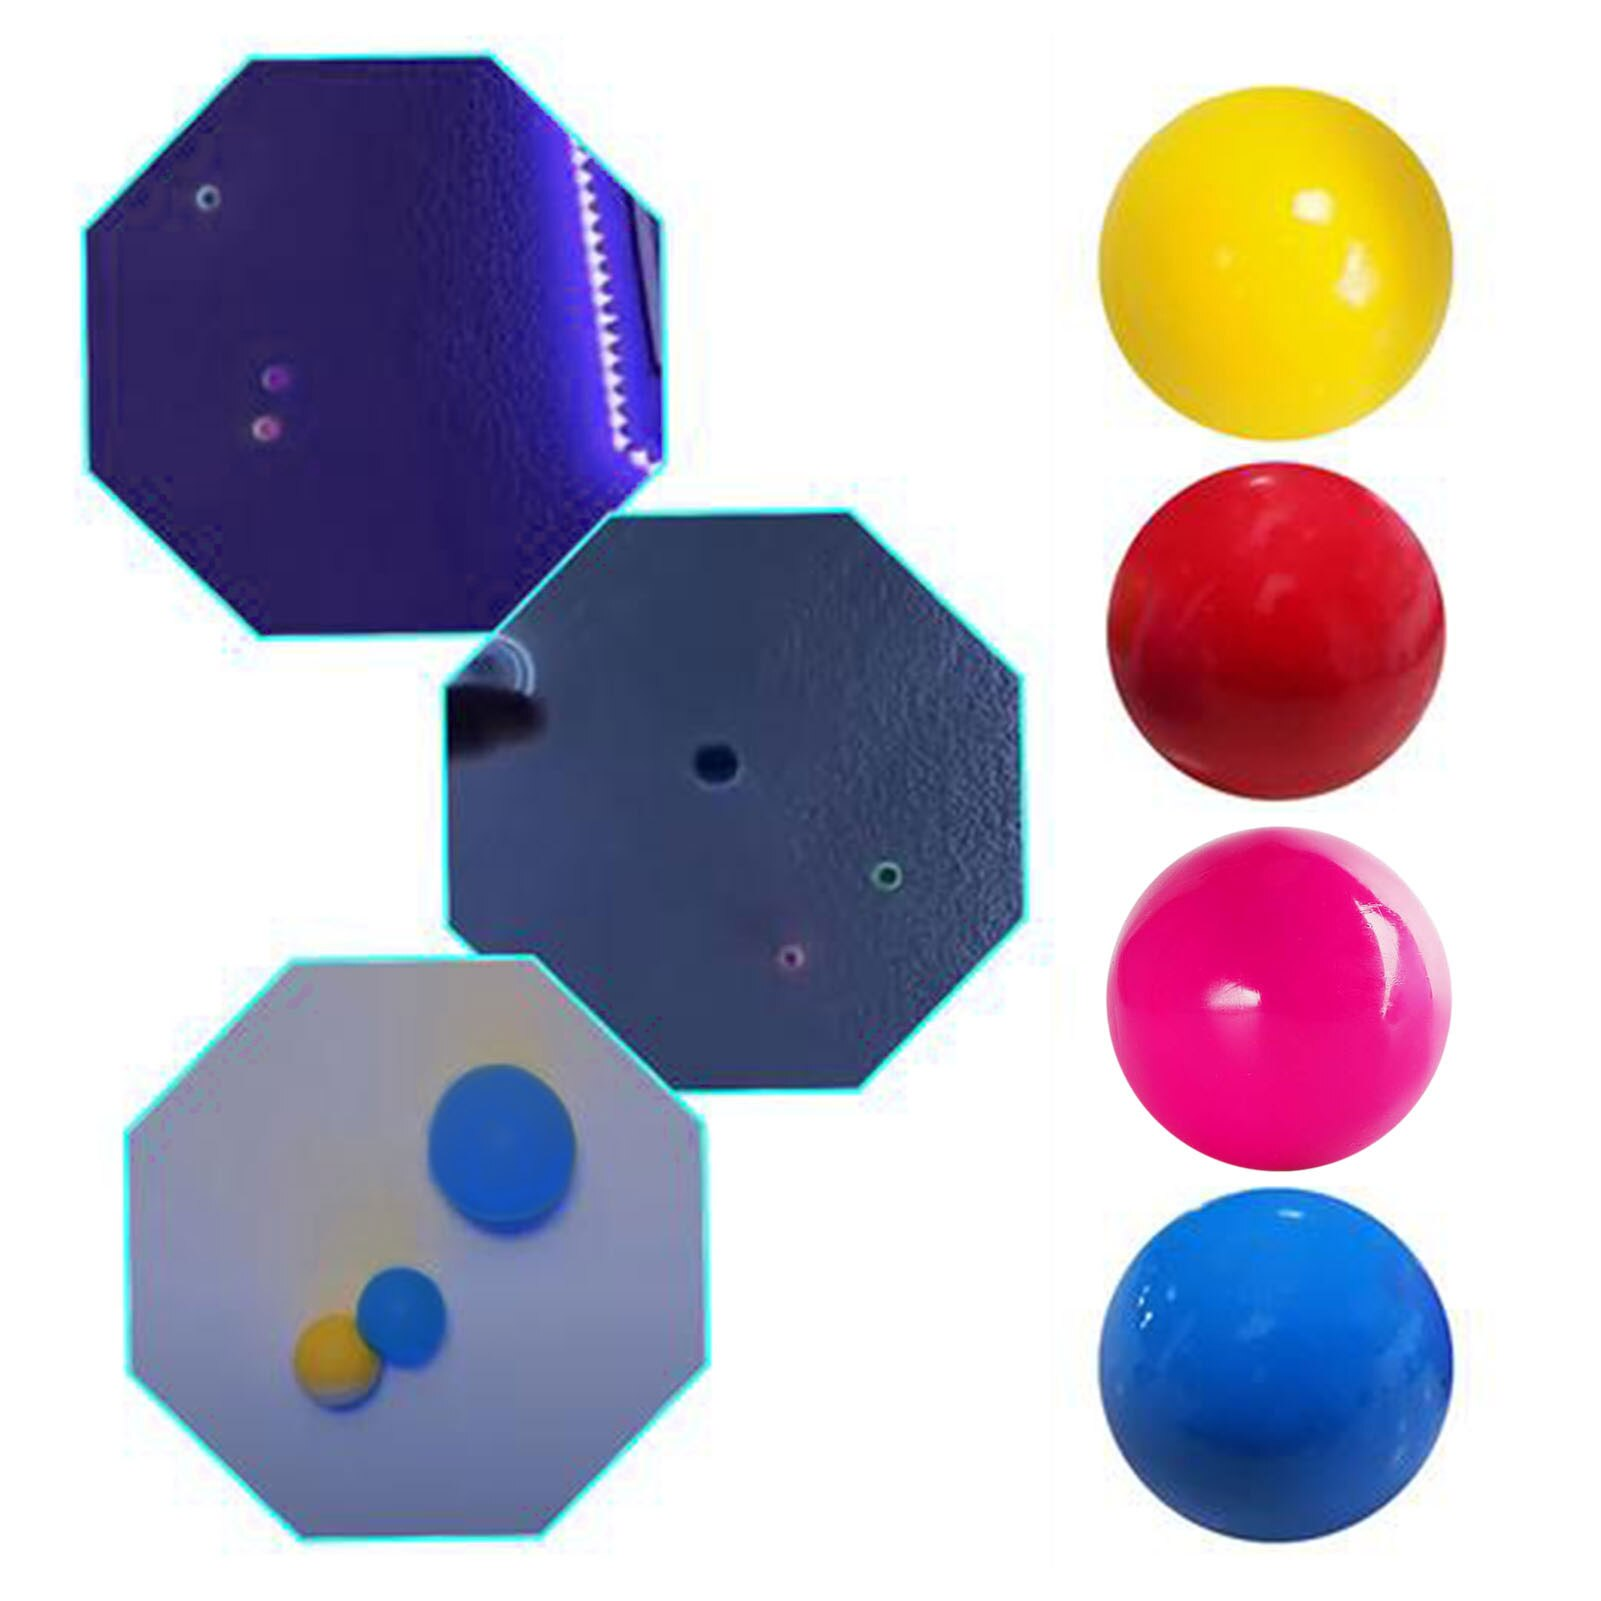 Sticky Balls Stress Relief Adults Decompression Target Ball Toy Anti-stress Toys Soft Toy Anti-stress For Children enlarge